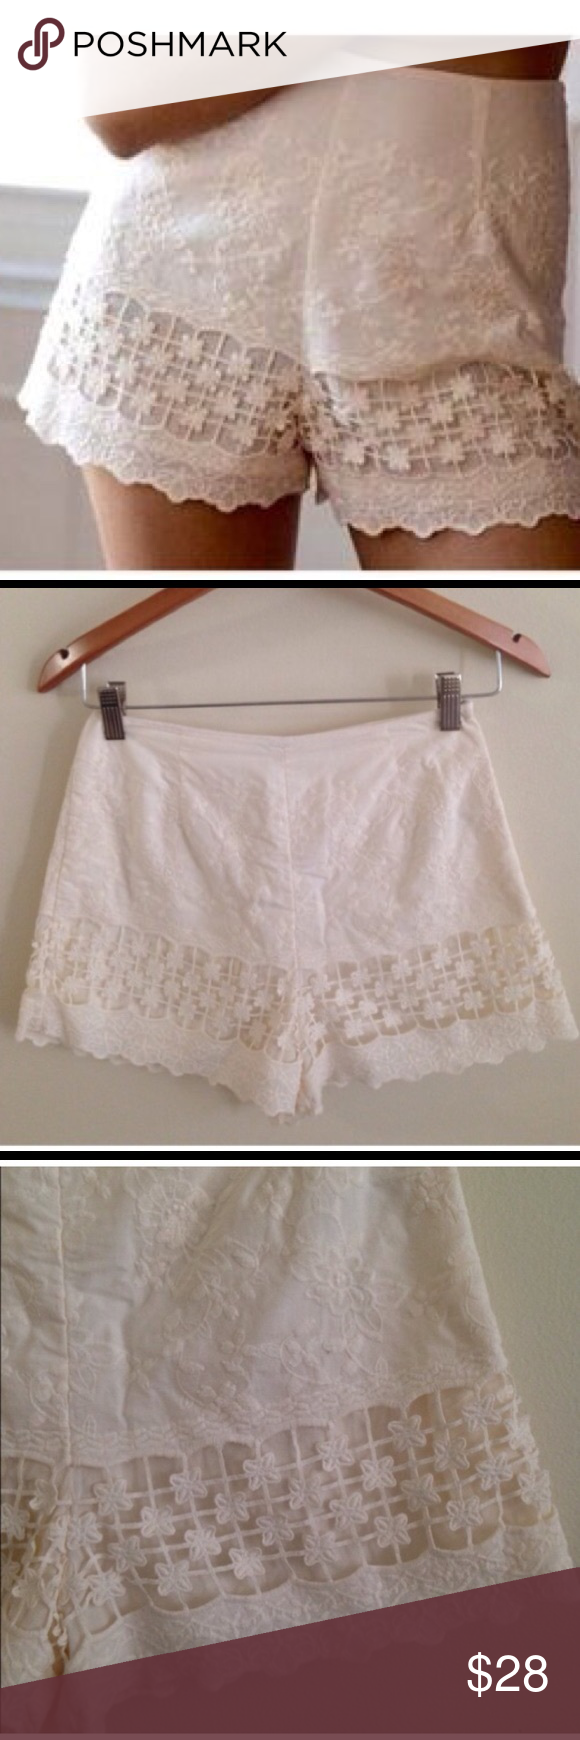 Kimchi Blue Ivory Lace Shorts Brand new! Adorable addition to your summer wardrobe! Urban Outfitters Shorts